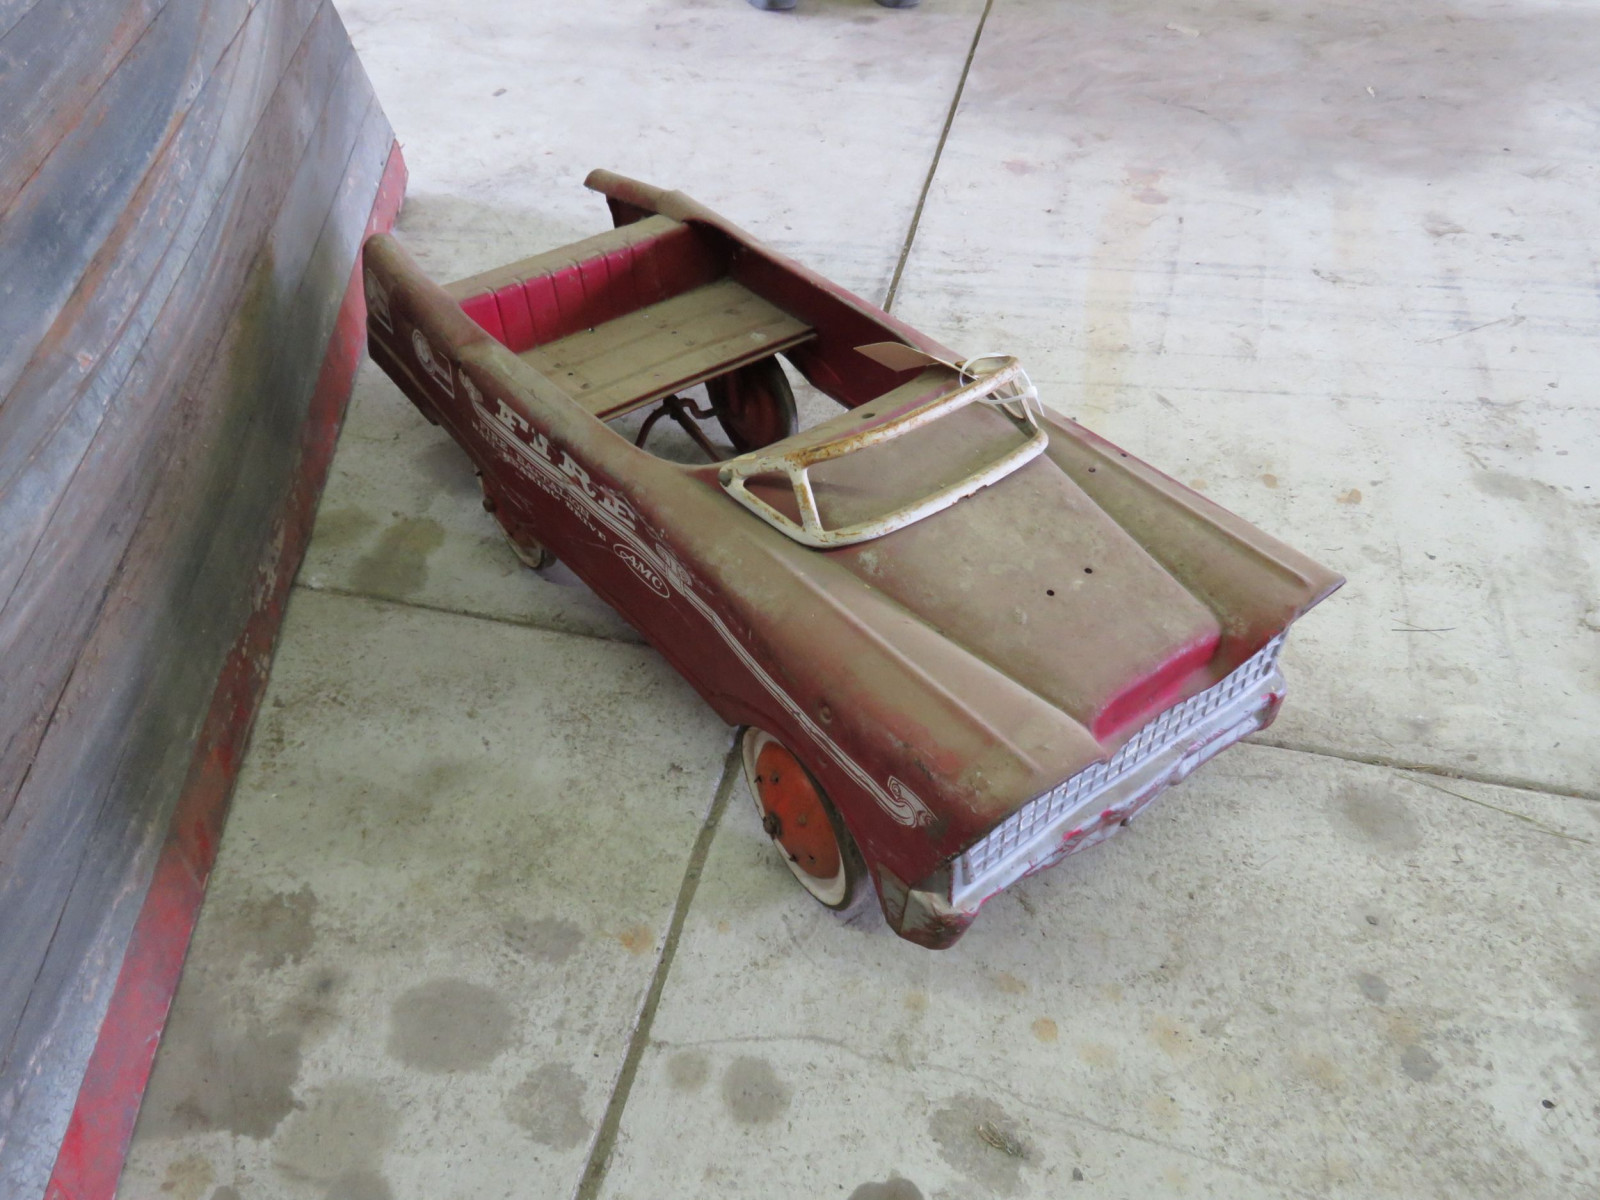 AMC Fire Chief Battalion Project Pedal Car - Image 2